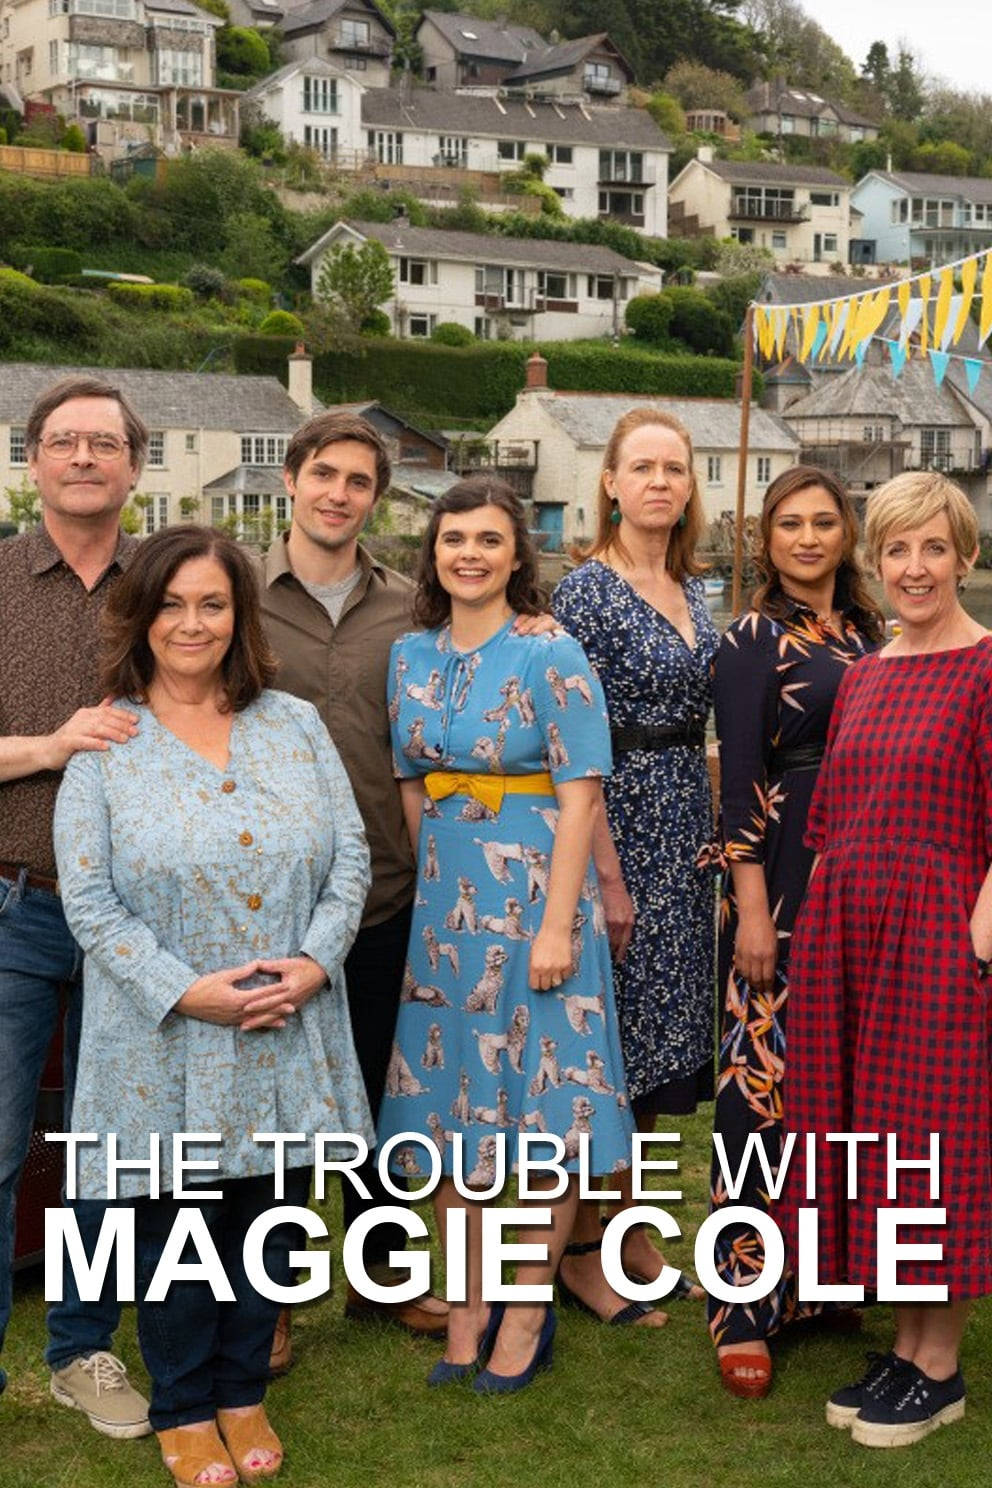 The Trouble with Maggie Cole (2020)